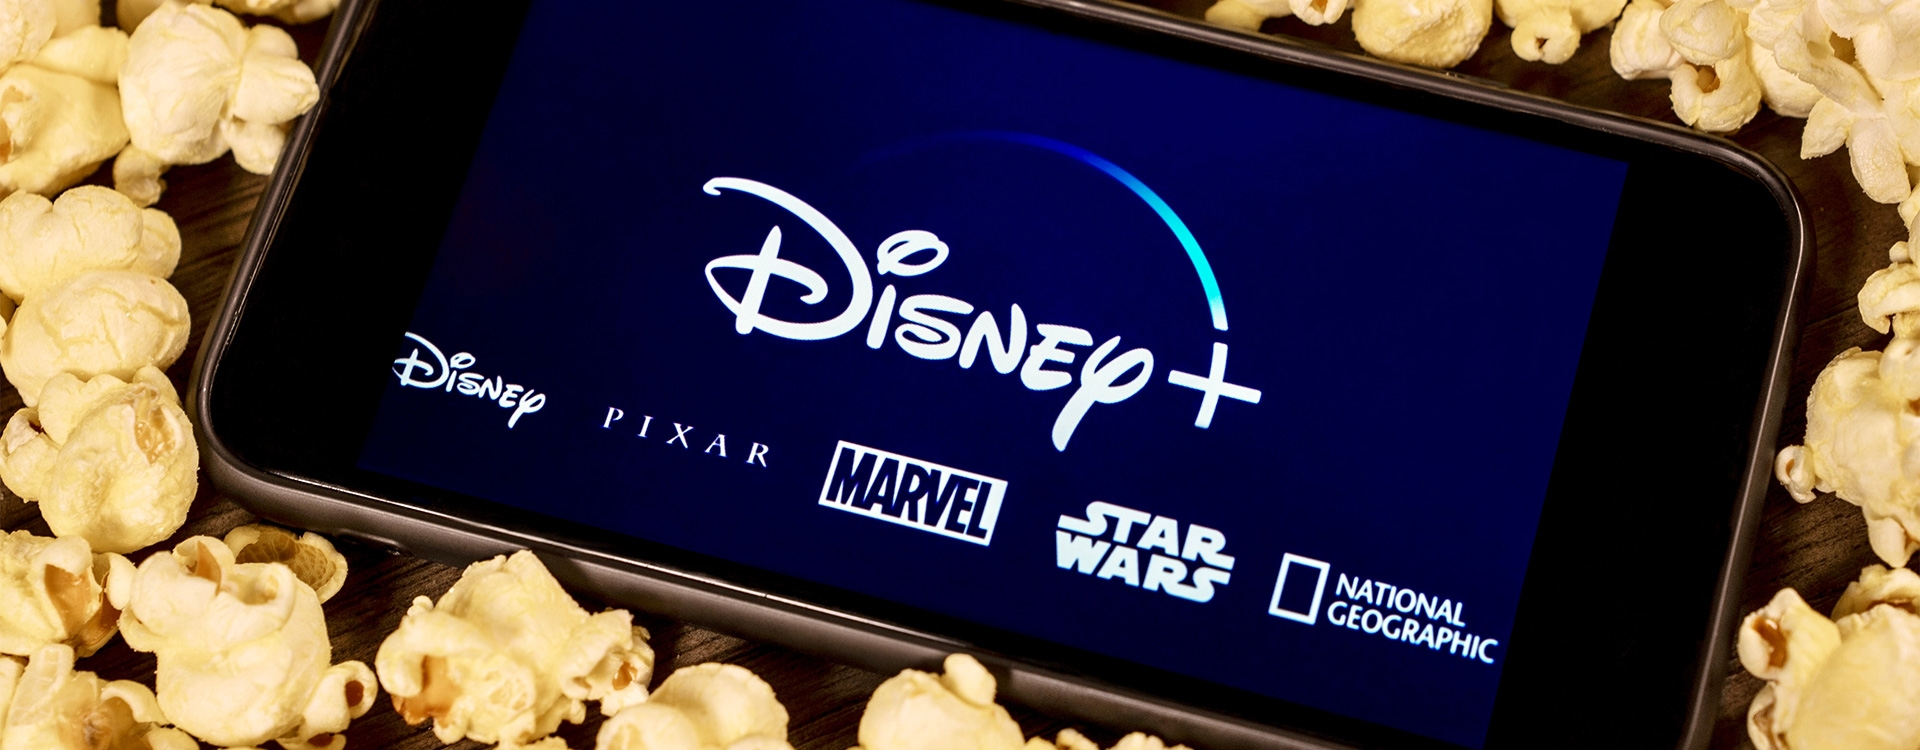 Disney+ officially launches: is Netflix in trouble?